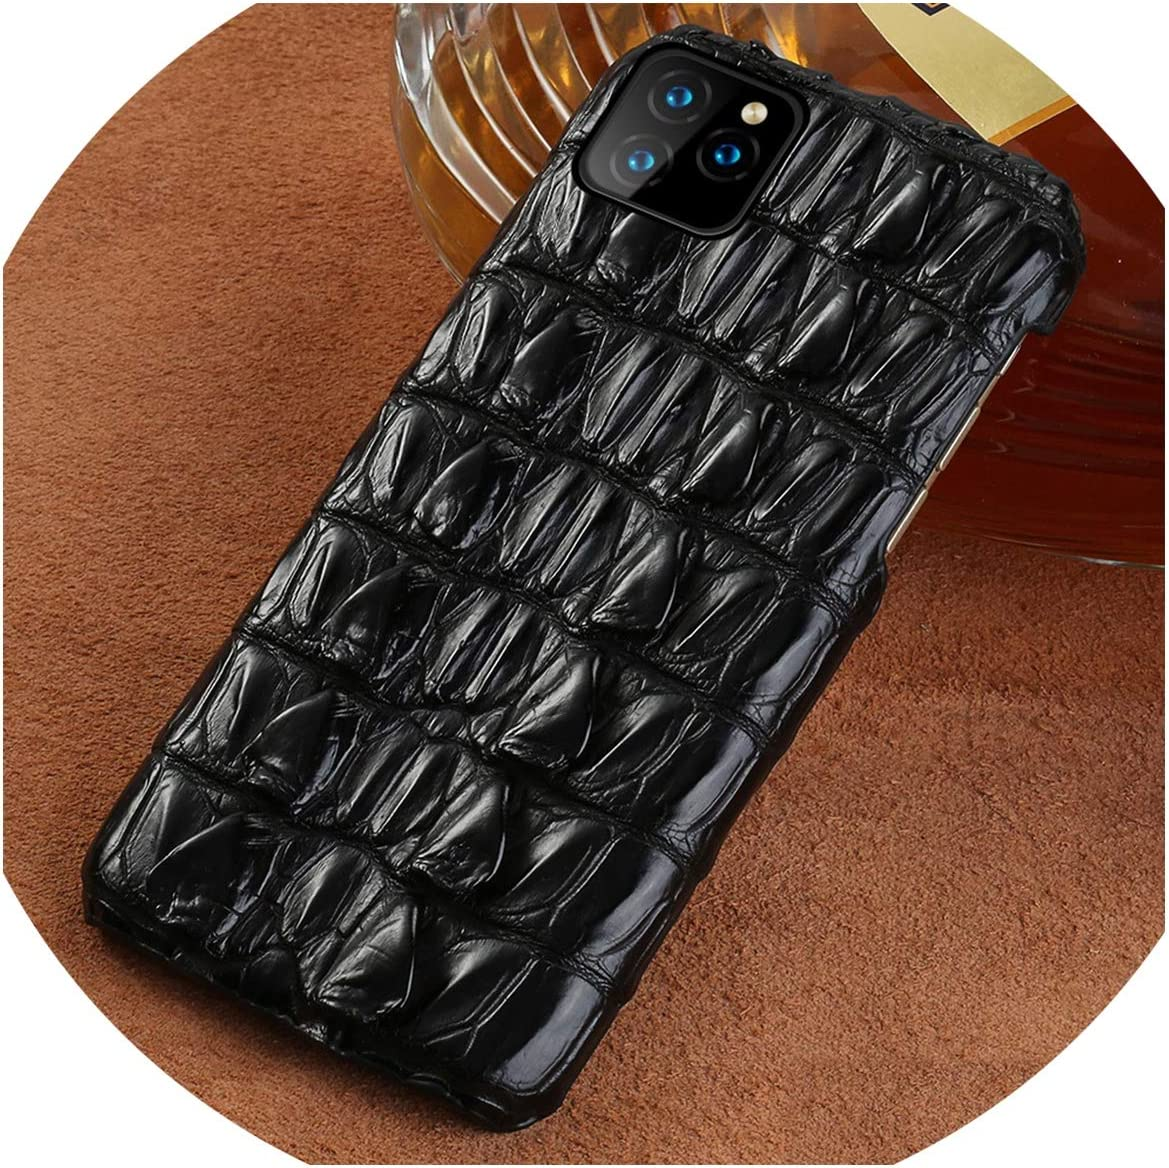 ORIGINAL FUNDA PARA IPHONE 11 PRO MAX 7 8 PLUS XS XR GENUINA